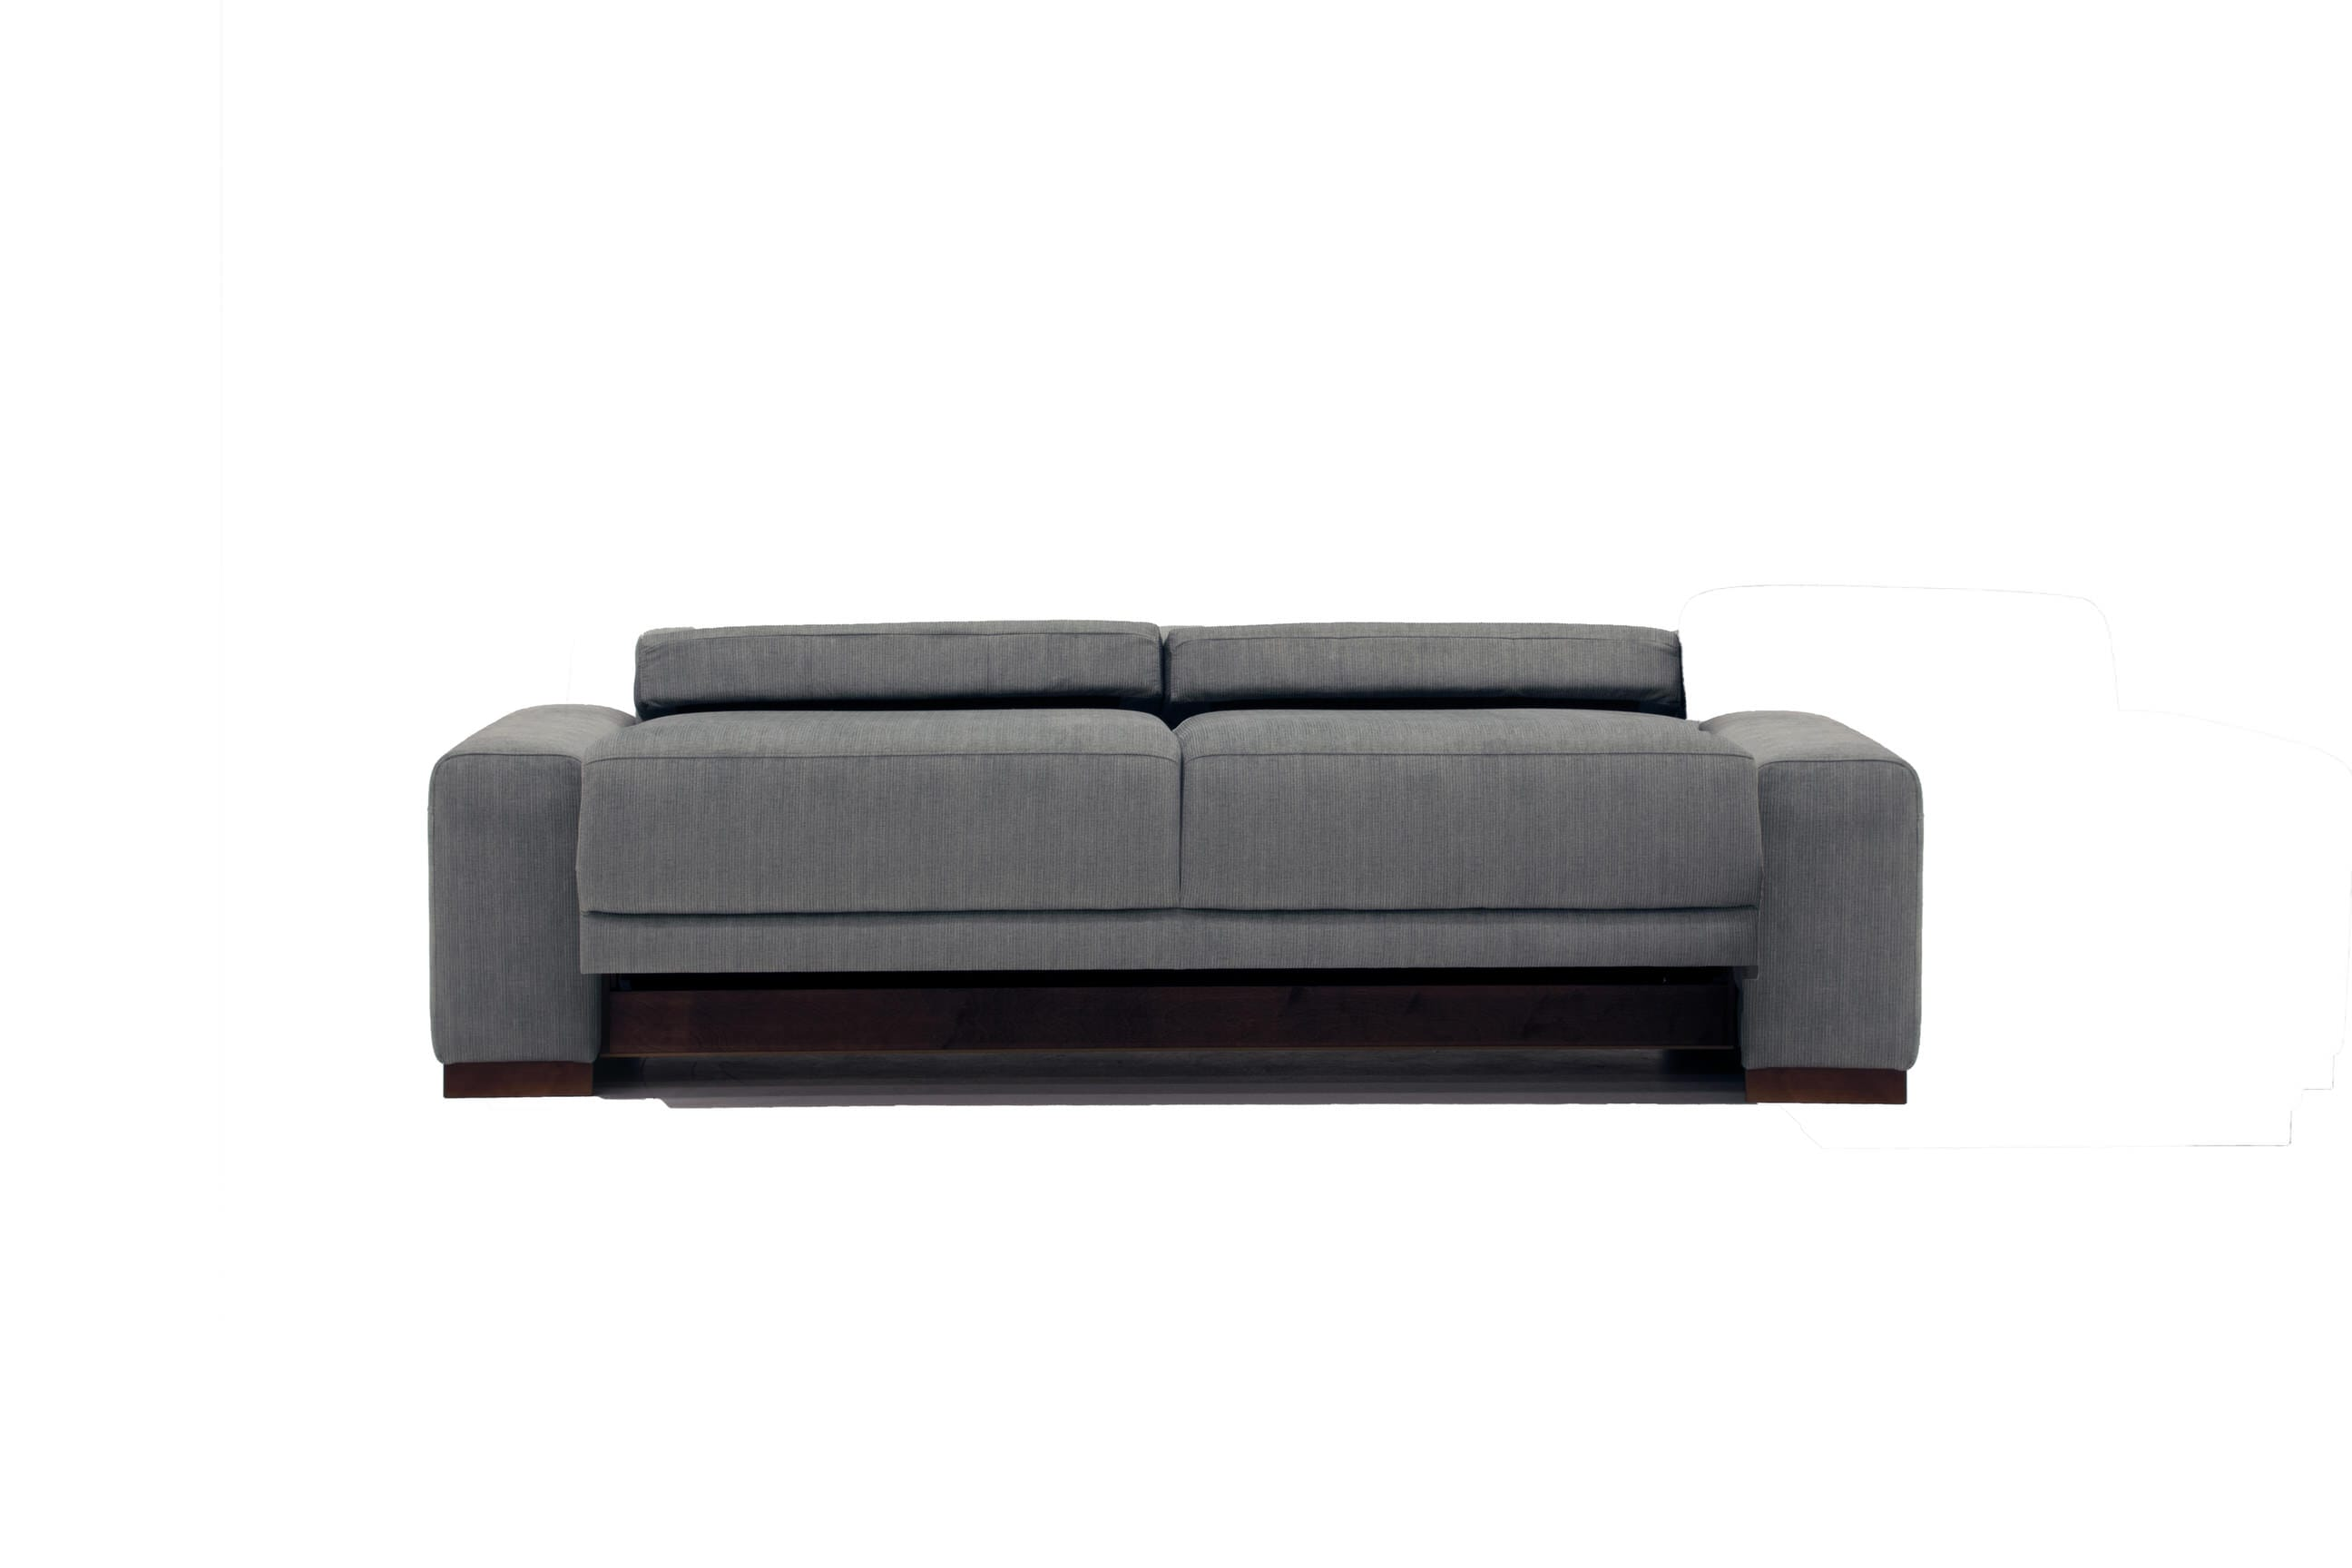 Futon Factory Paris Copenhagen Sofa Sleeper Full Xl Size By Luonto Furniture